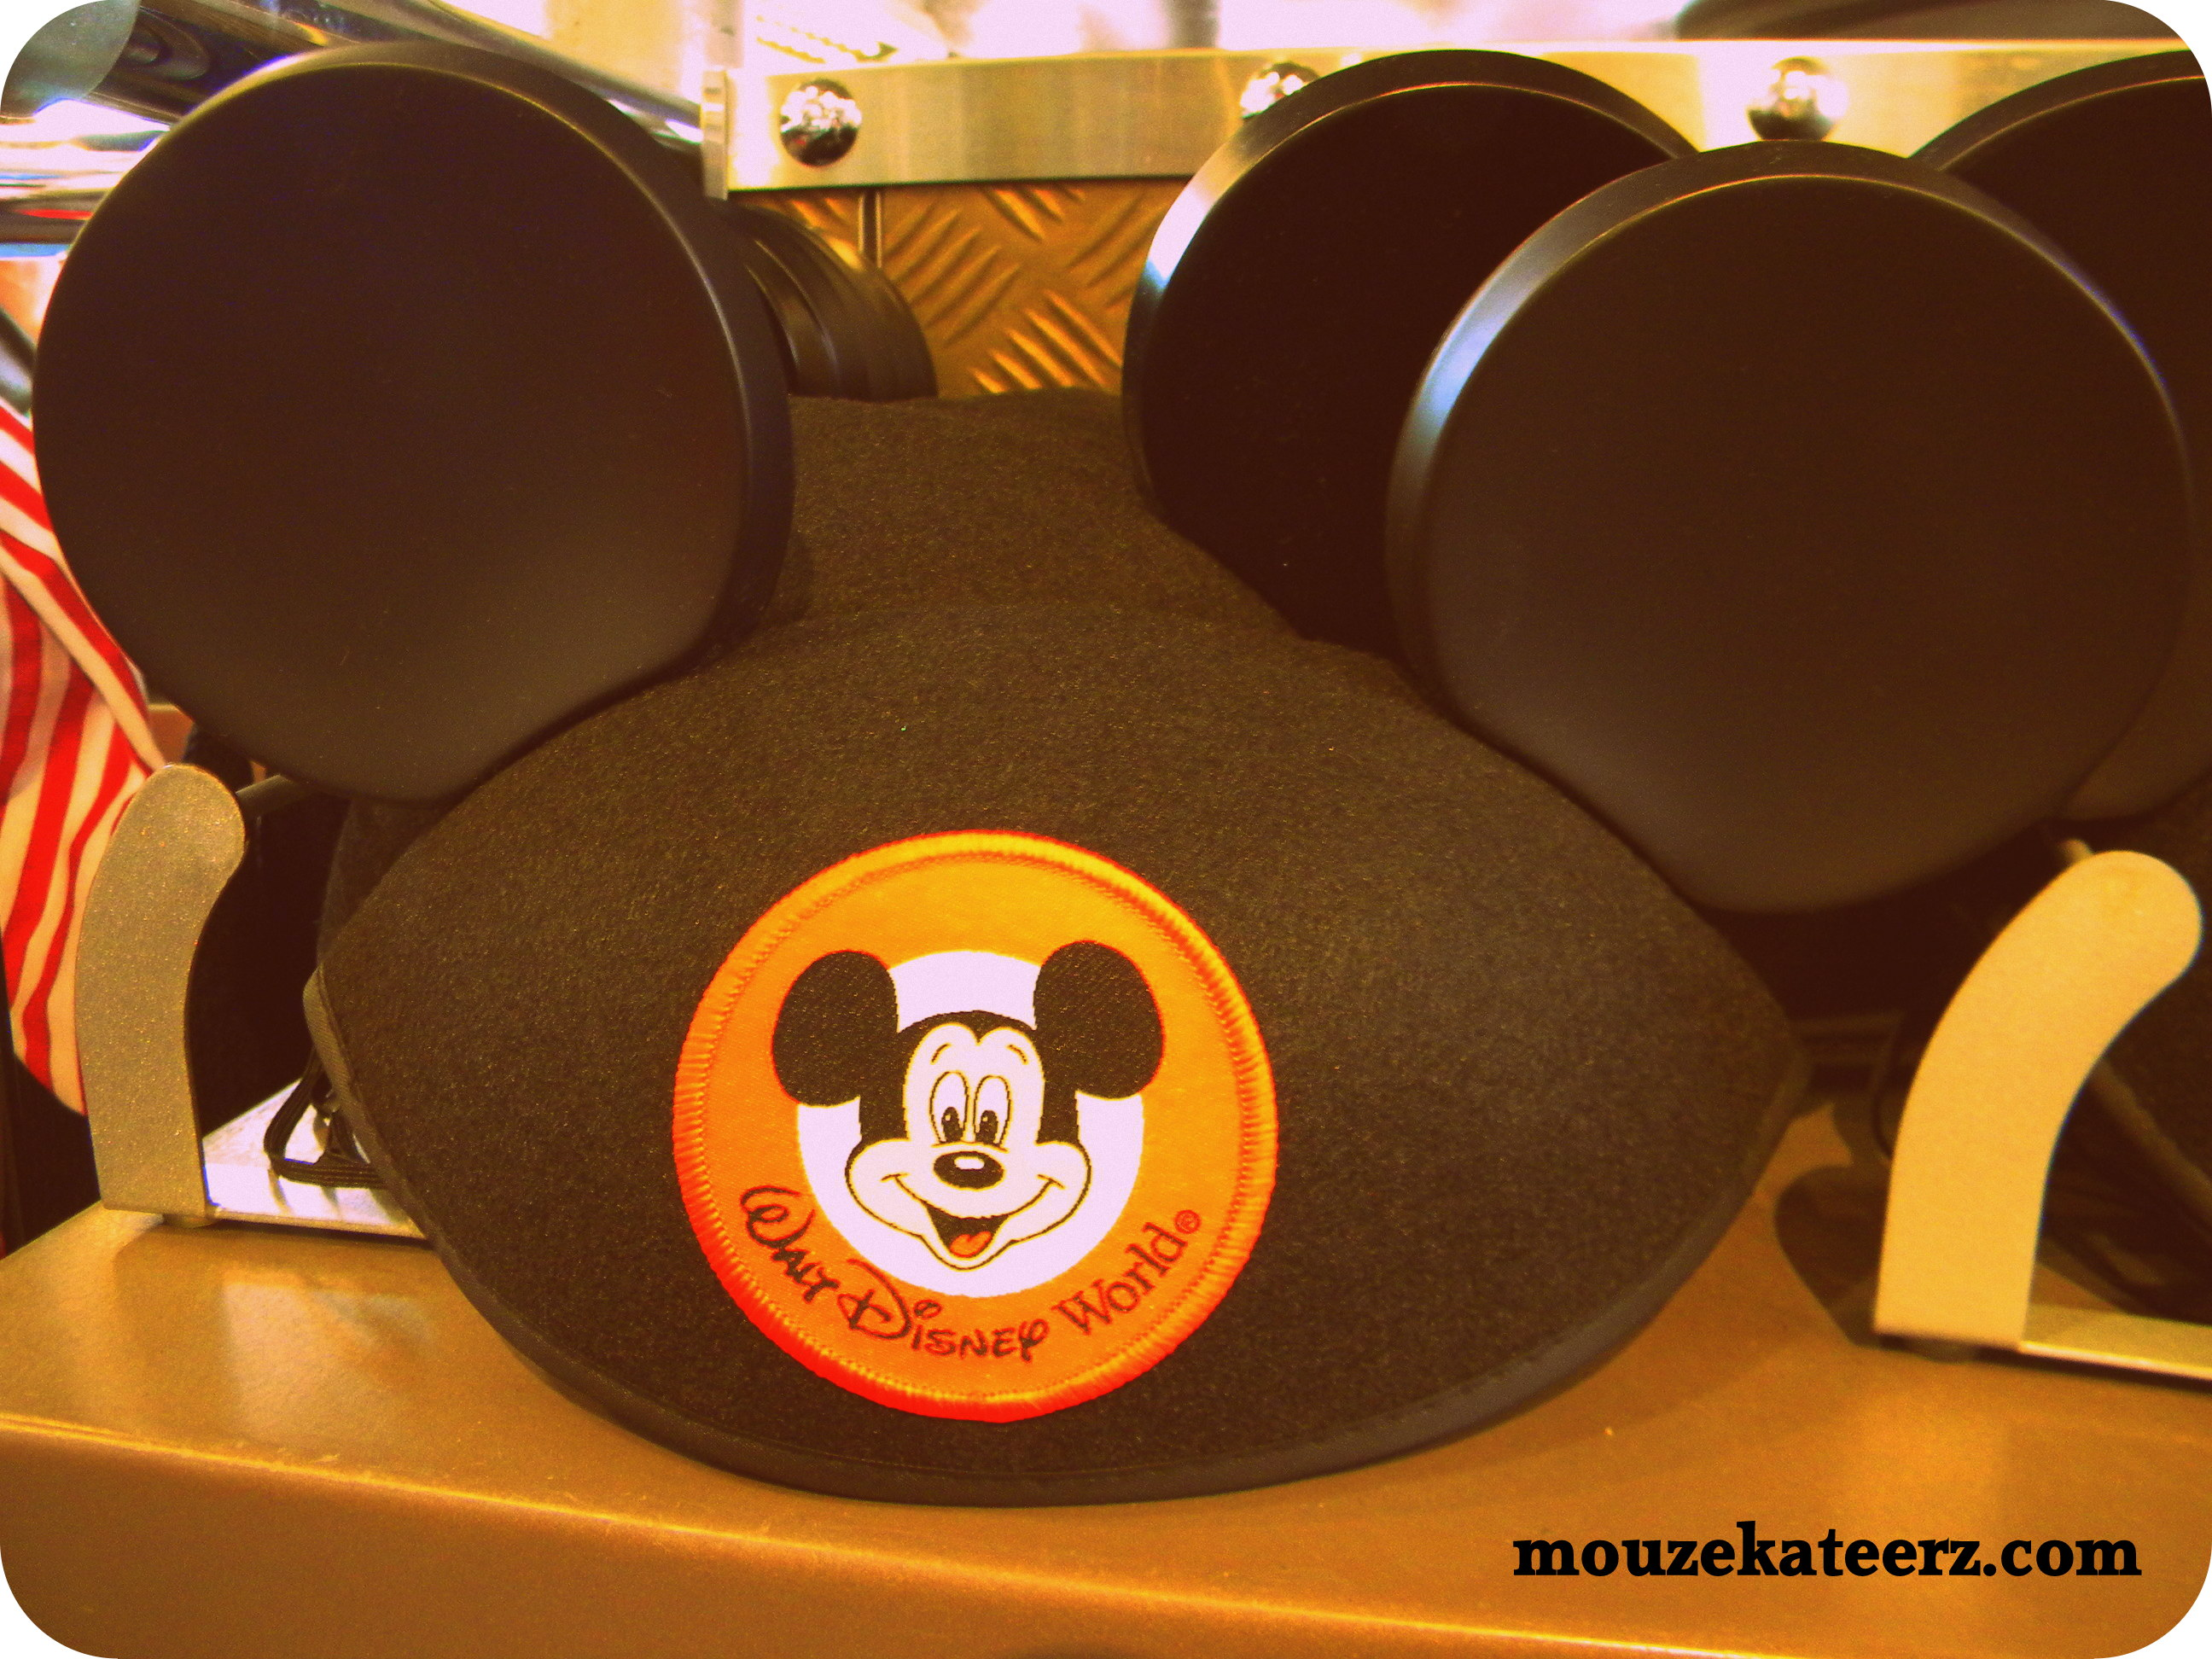 55b1406e8eb4d The Mickey Mouse Ears Hat  One of the Greatest Disney World ...